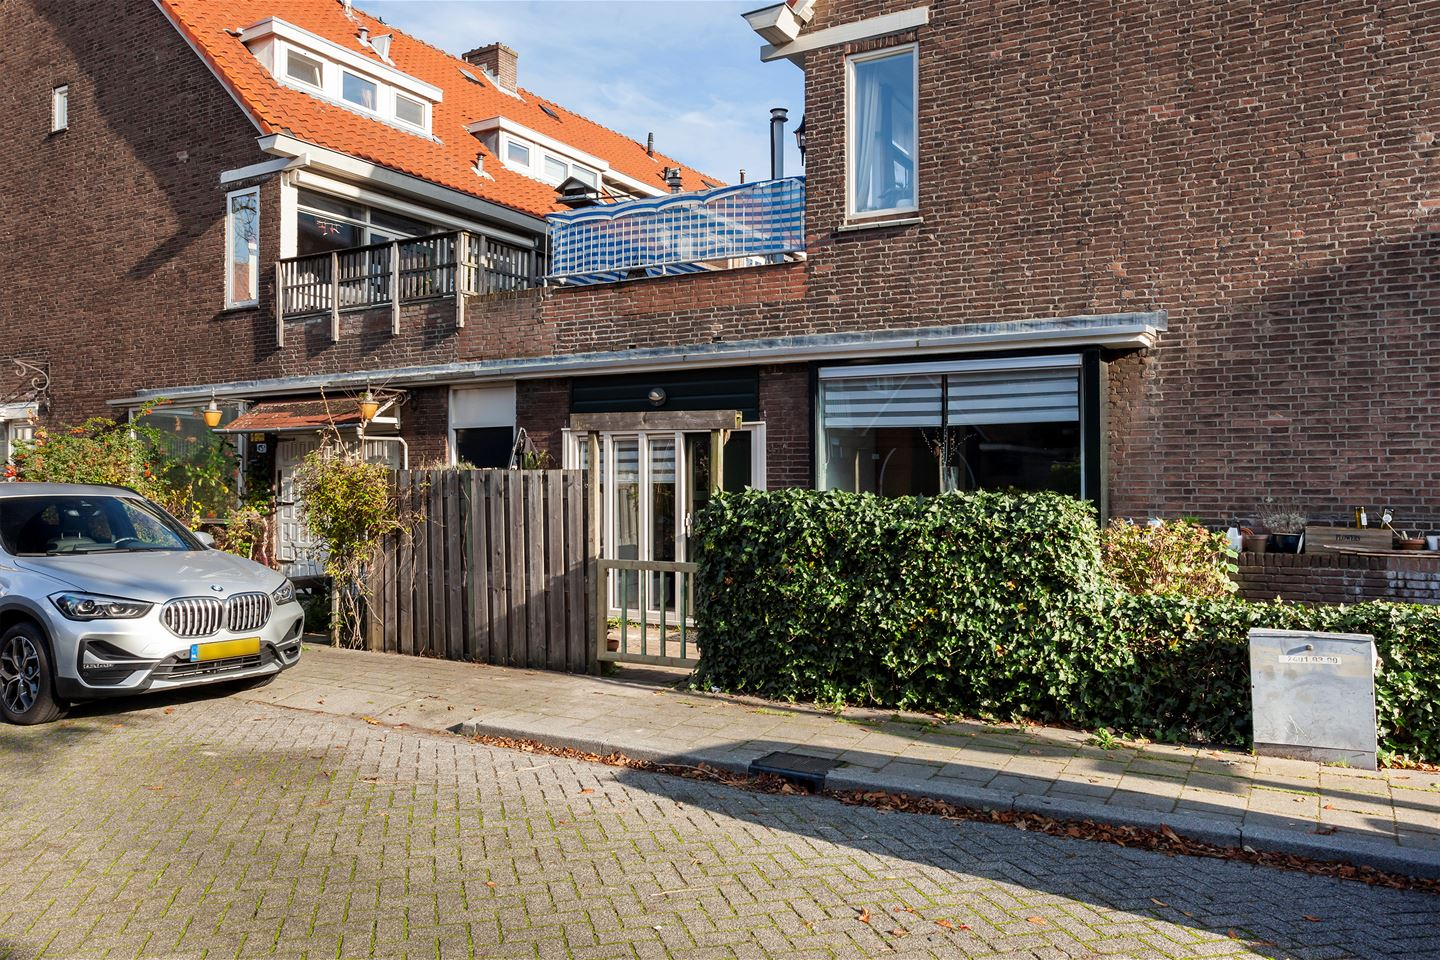 View photo 3 of Lisbloemstraat 47 a